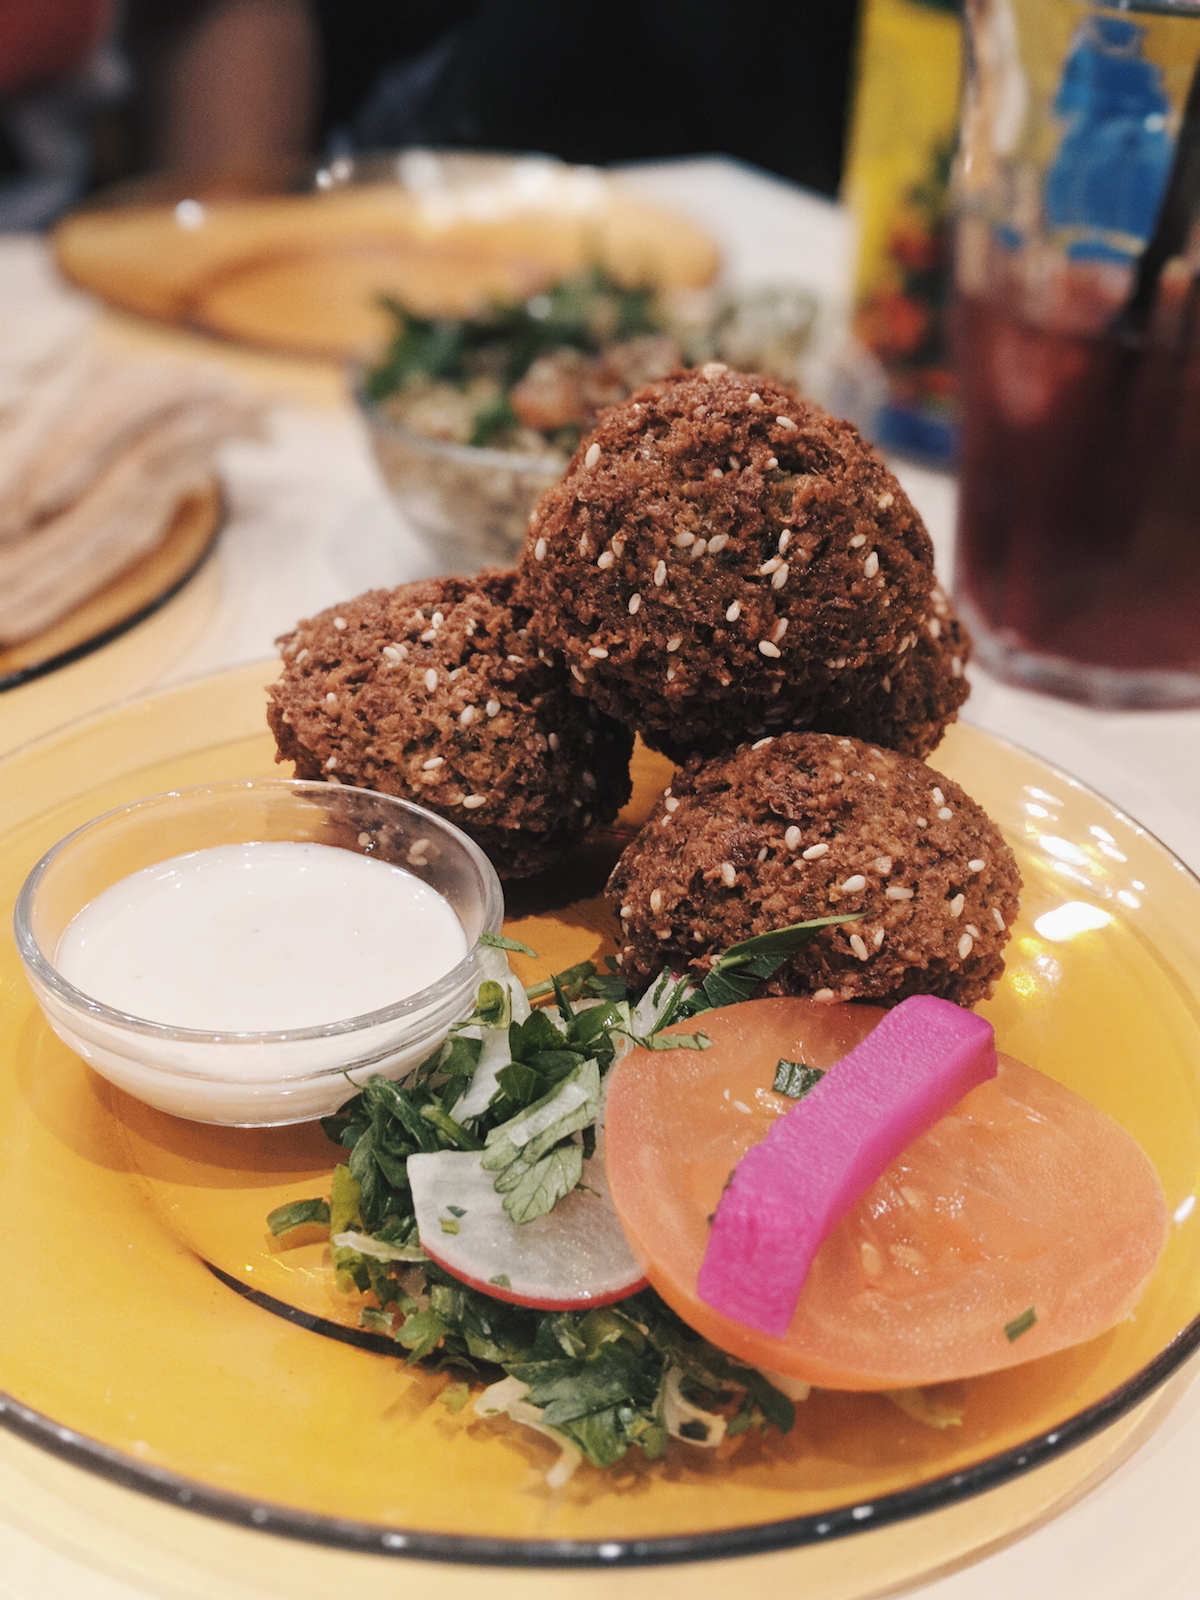 Four huge falafels with a tahini dipping sauce.